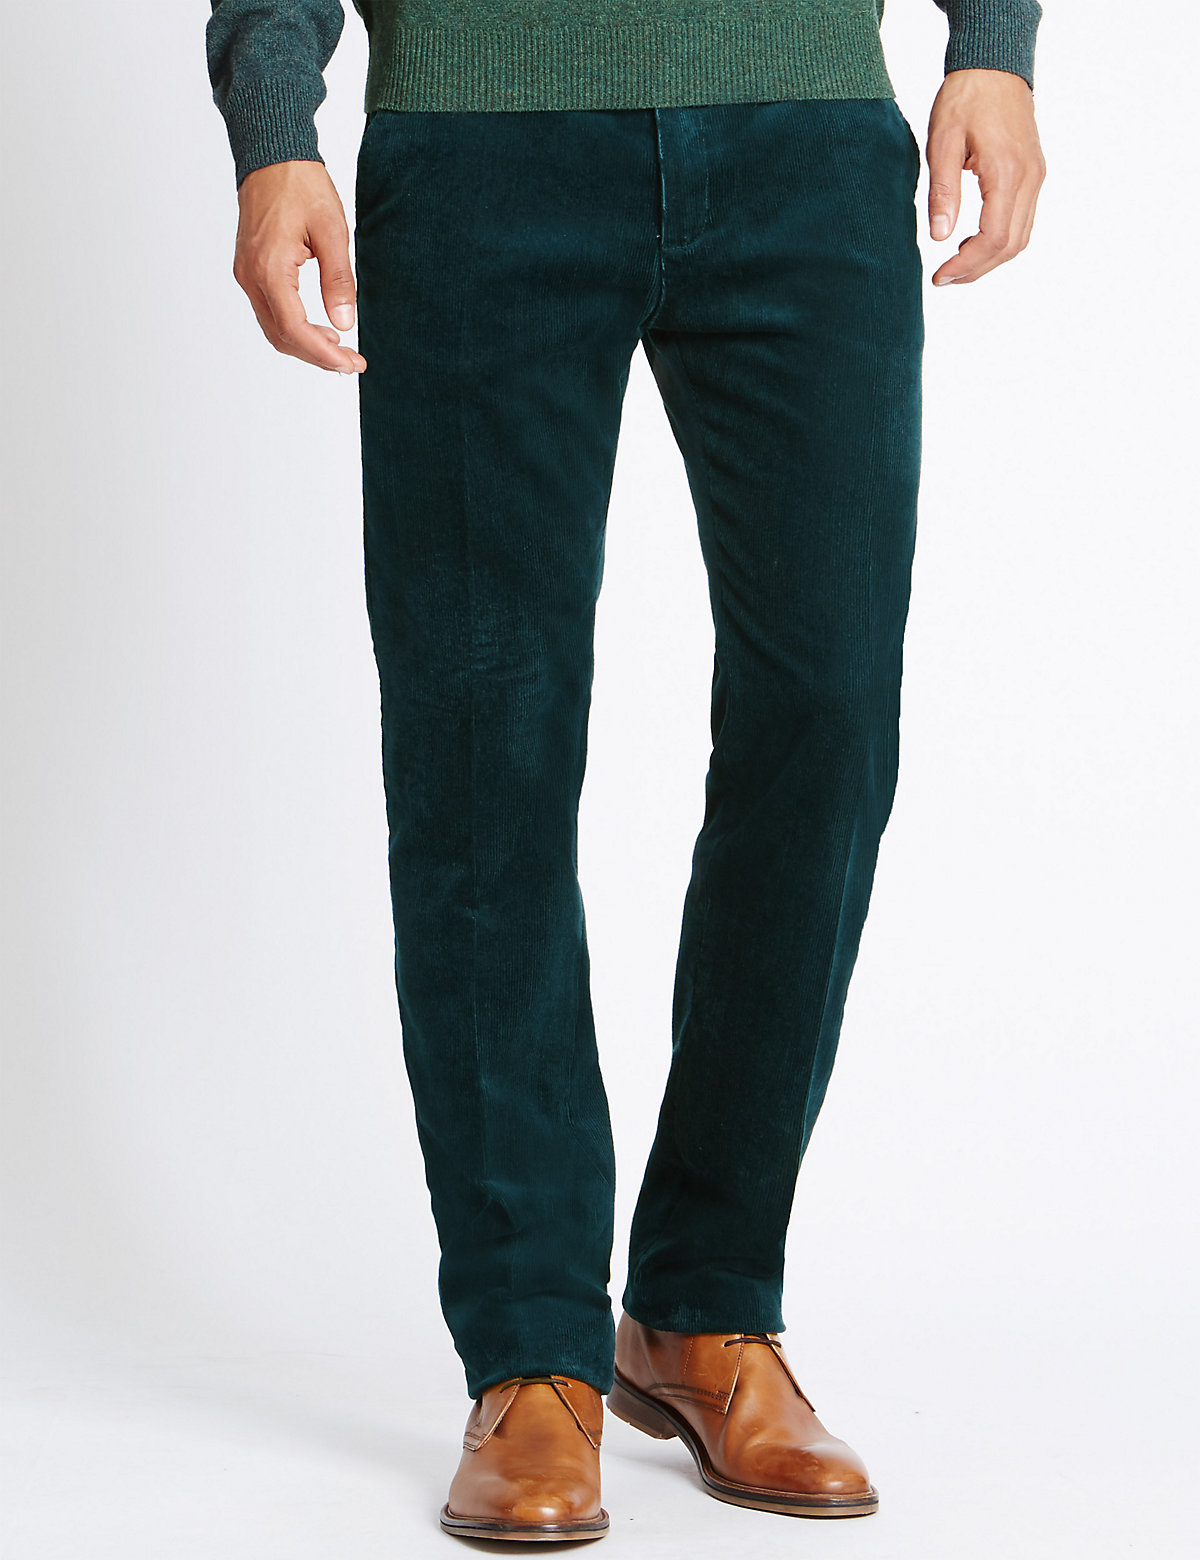 Image of M&S Collection Cotton Rich Corduroy Trousers with Stormwear